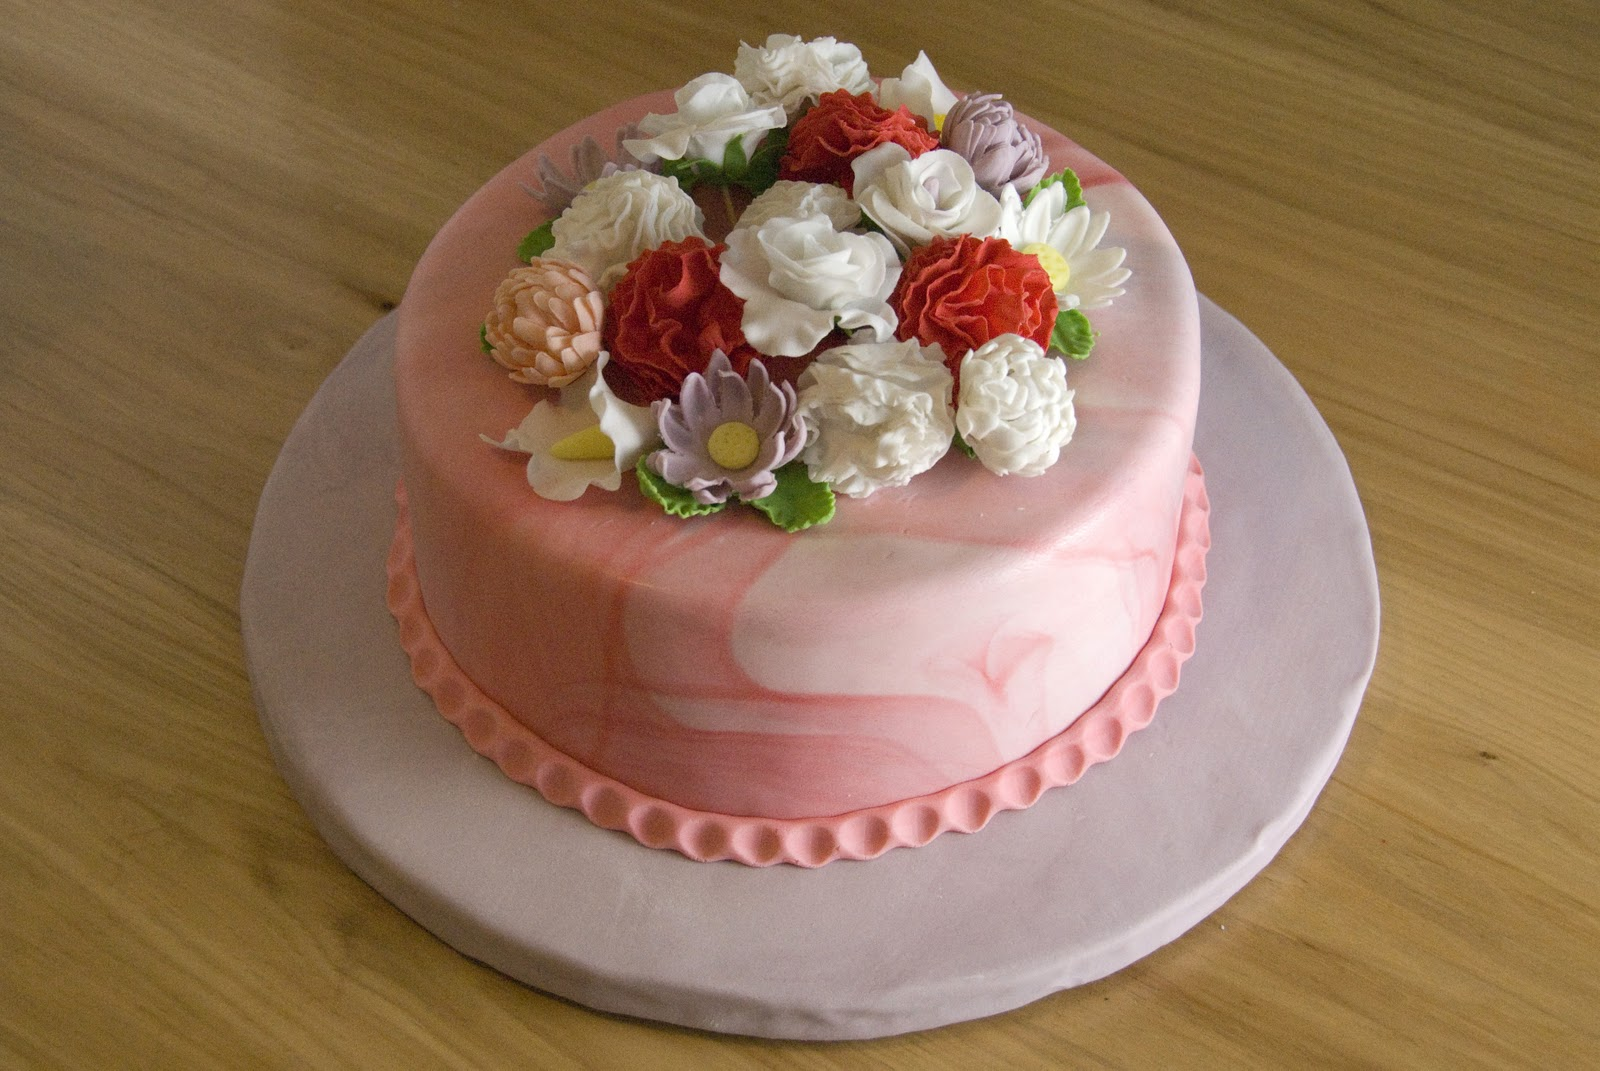 Flower Cake Design Ideas